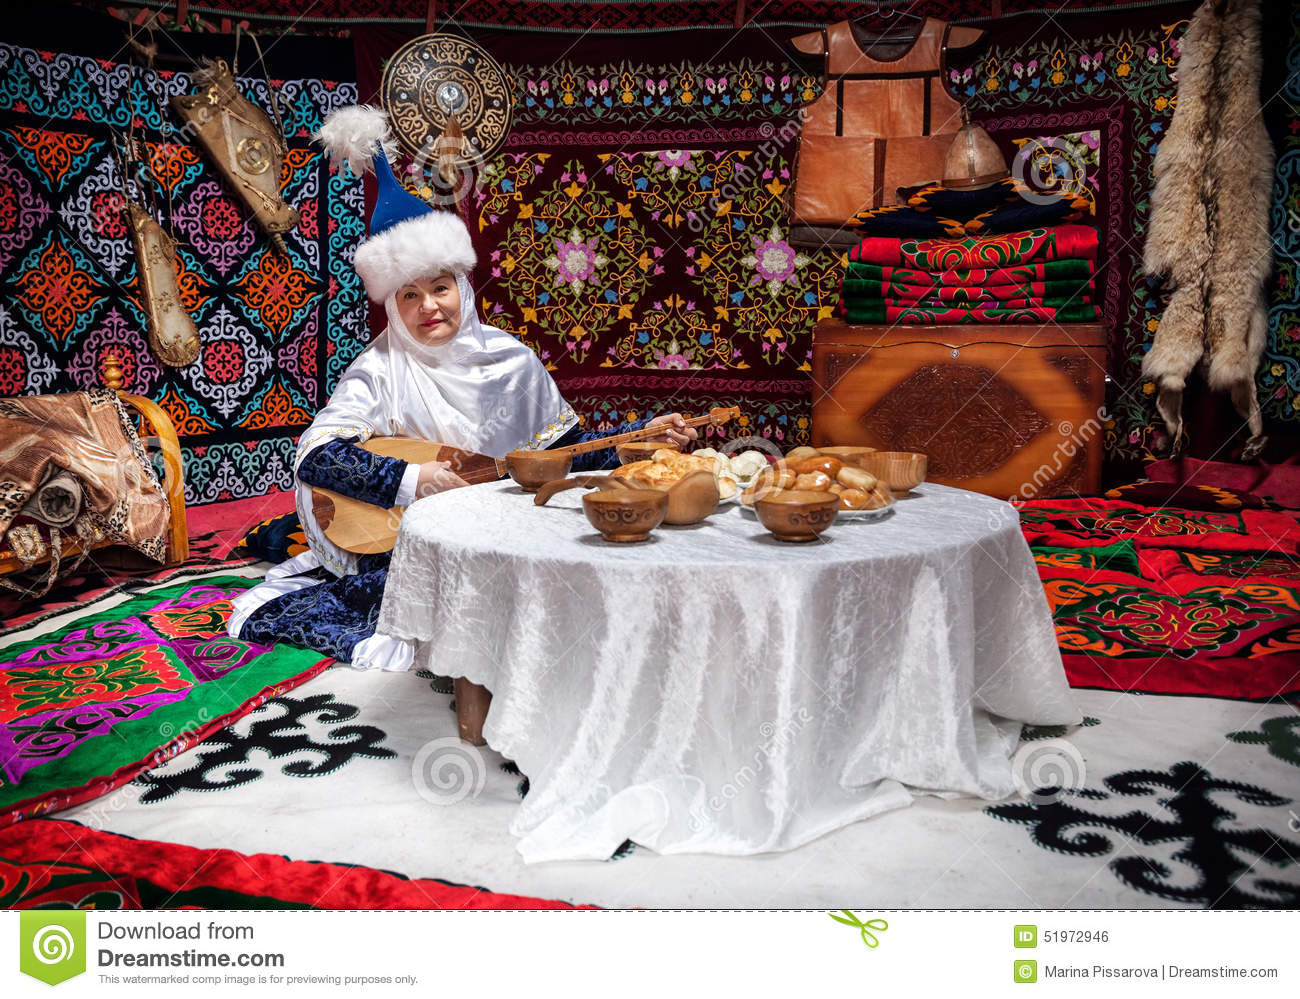 nauryz Nowruz (persian: نوروز  nowruz, [nouˈɾuːz] literally new day) is the name of the iranian new year's day, also known as the persian new year, which is celebrated worldwide by various ethno-linguistic groups.